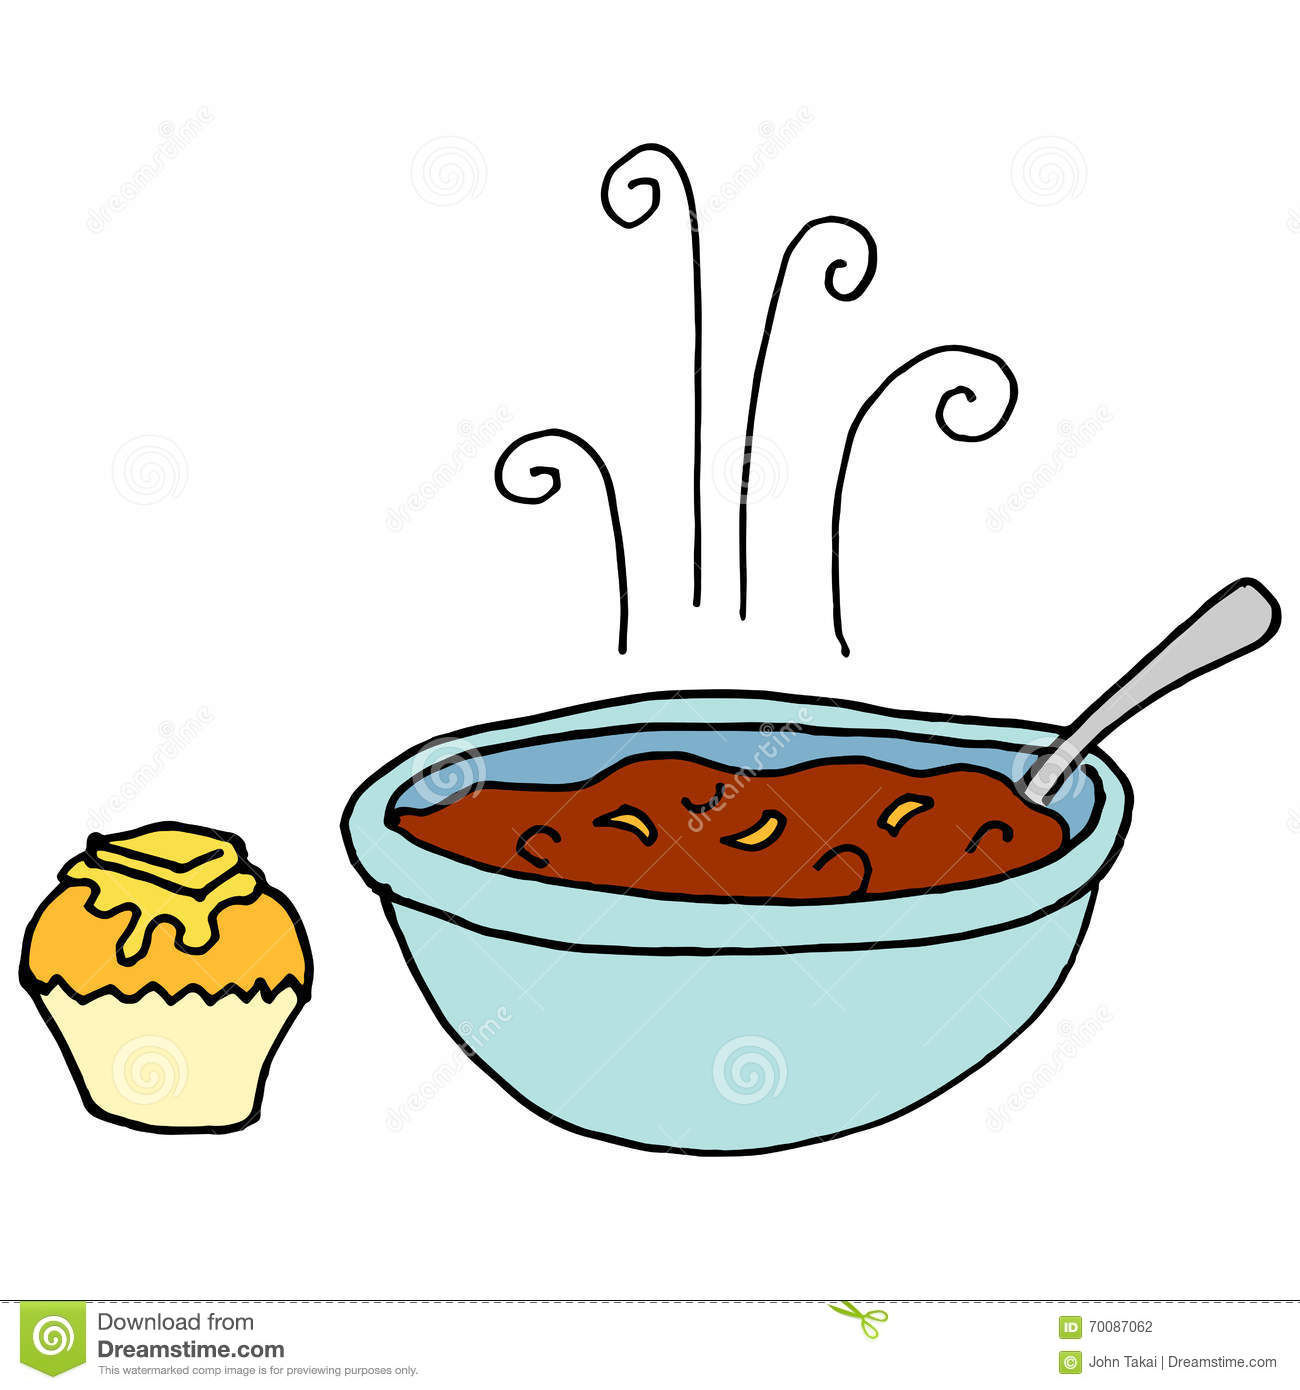 Bowl Of Chili Clipart Free.